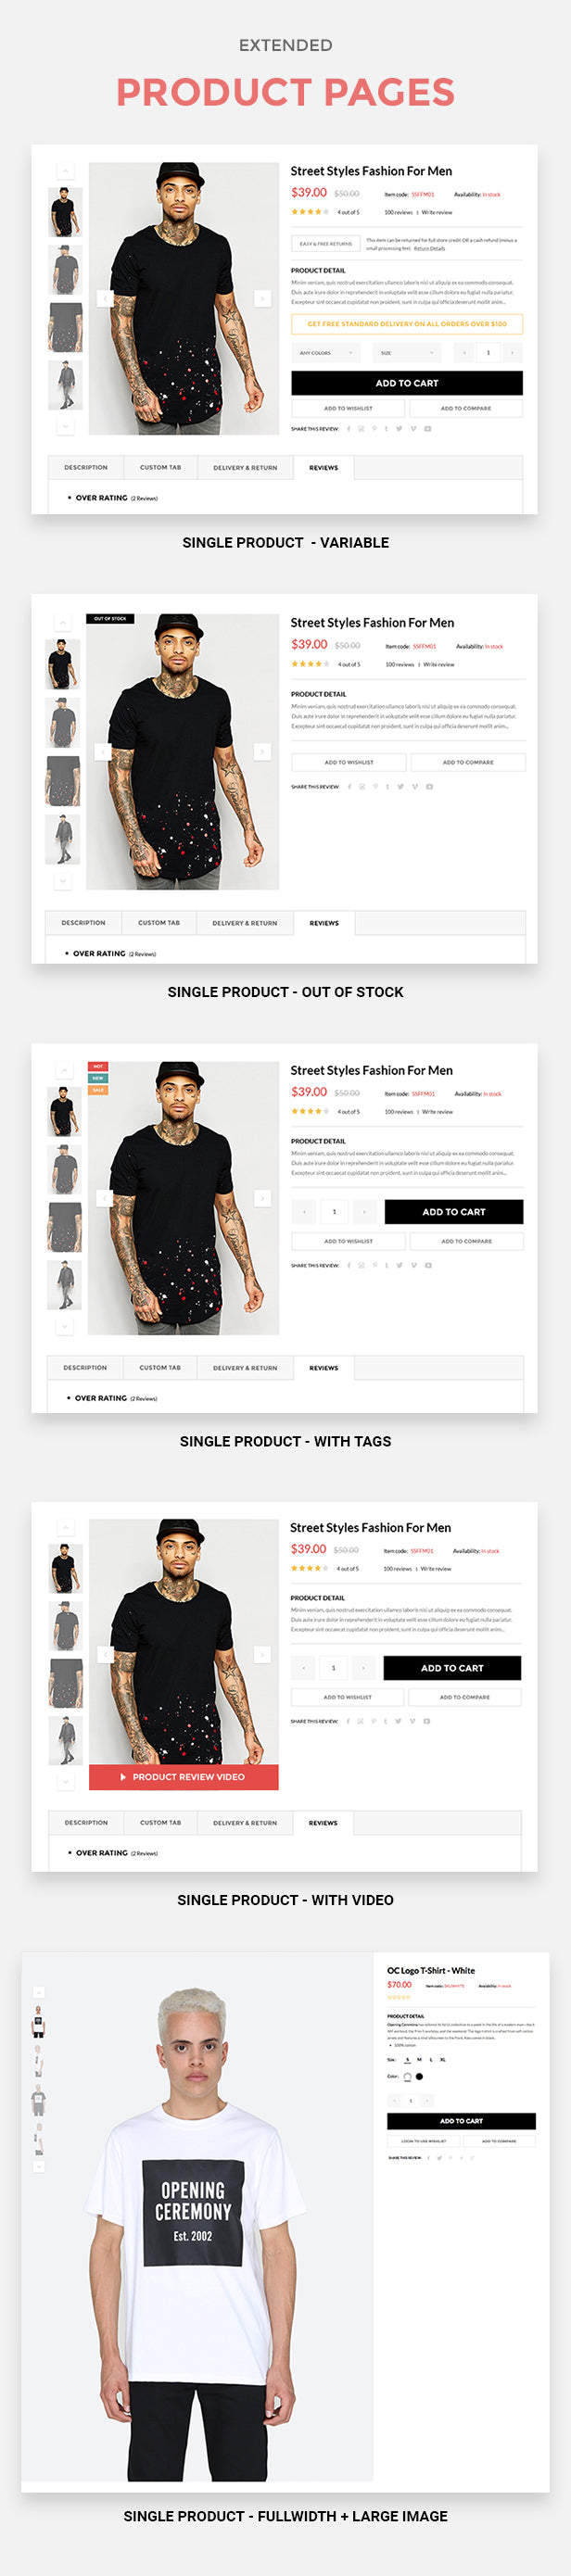 Vision - DRAG and DROP Fashion, Digital Shopify Theme